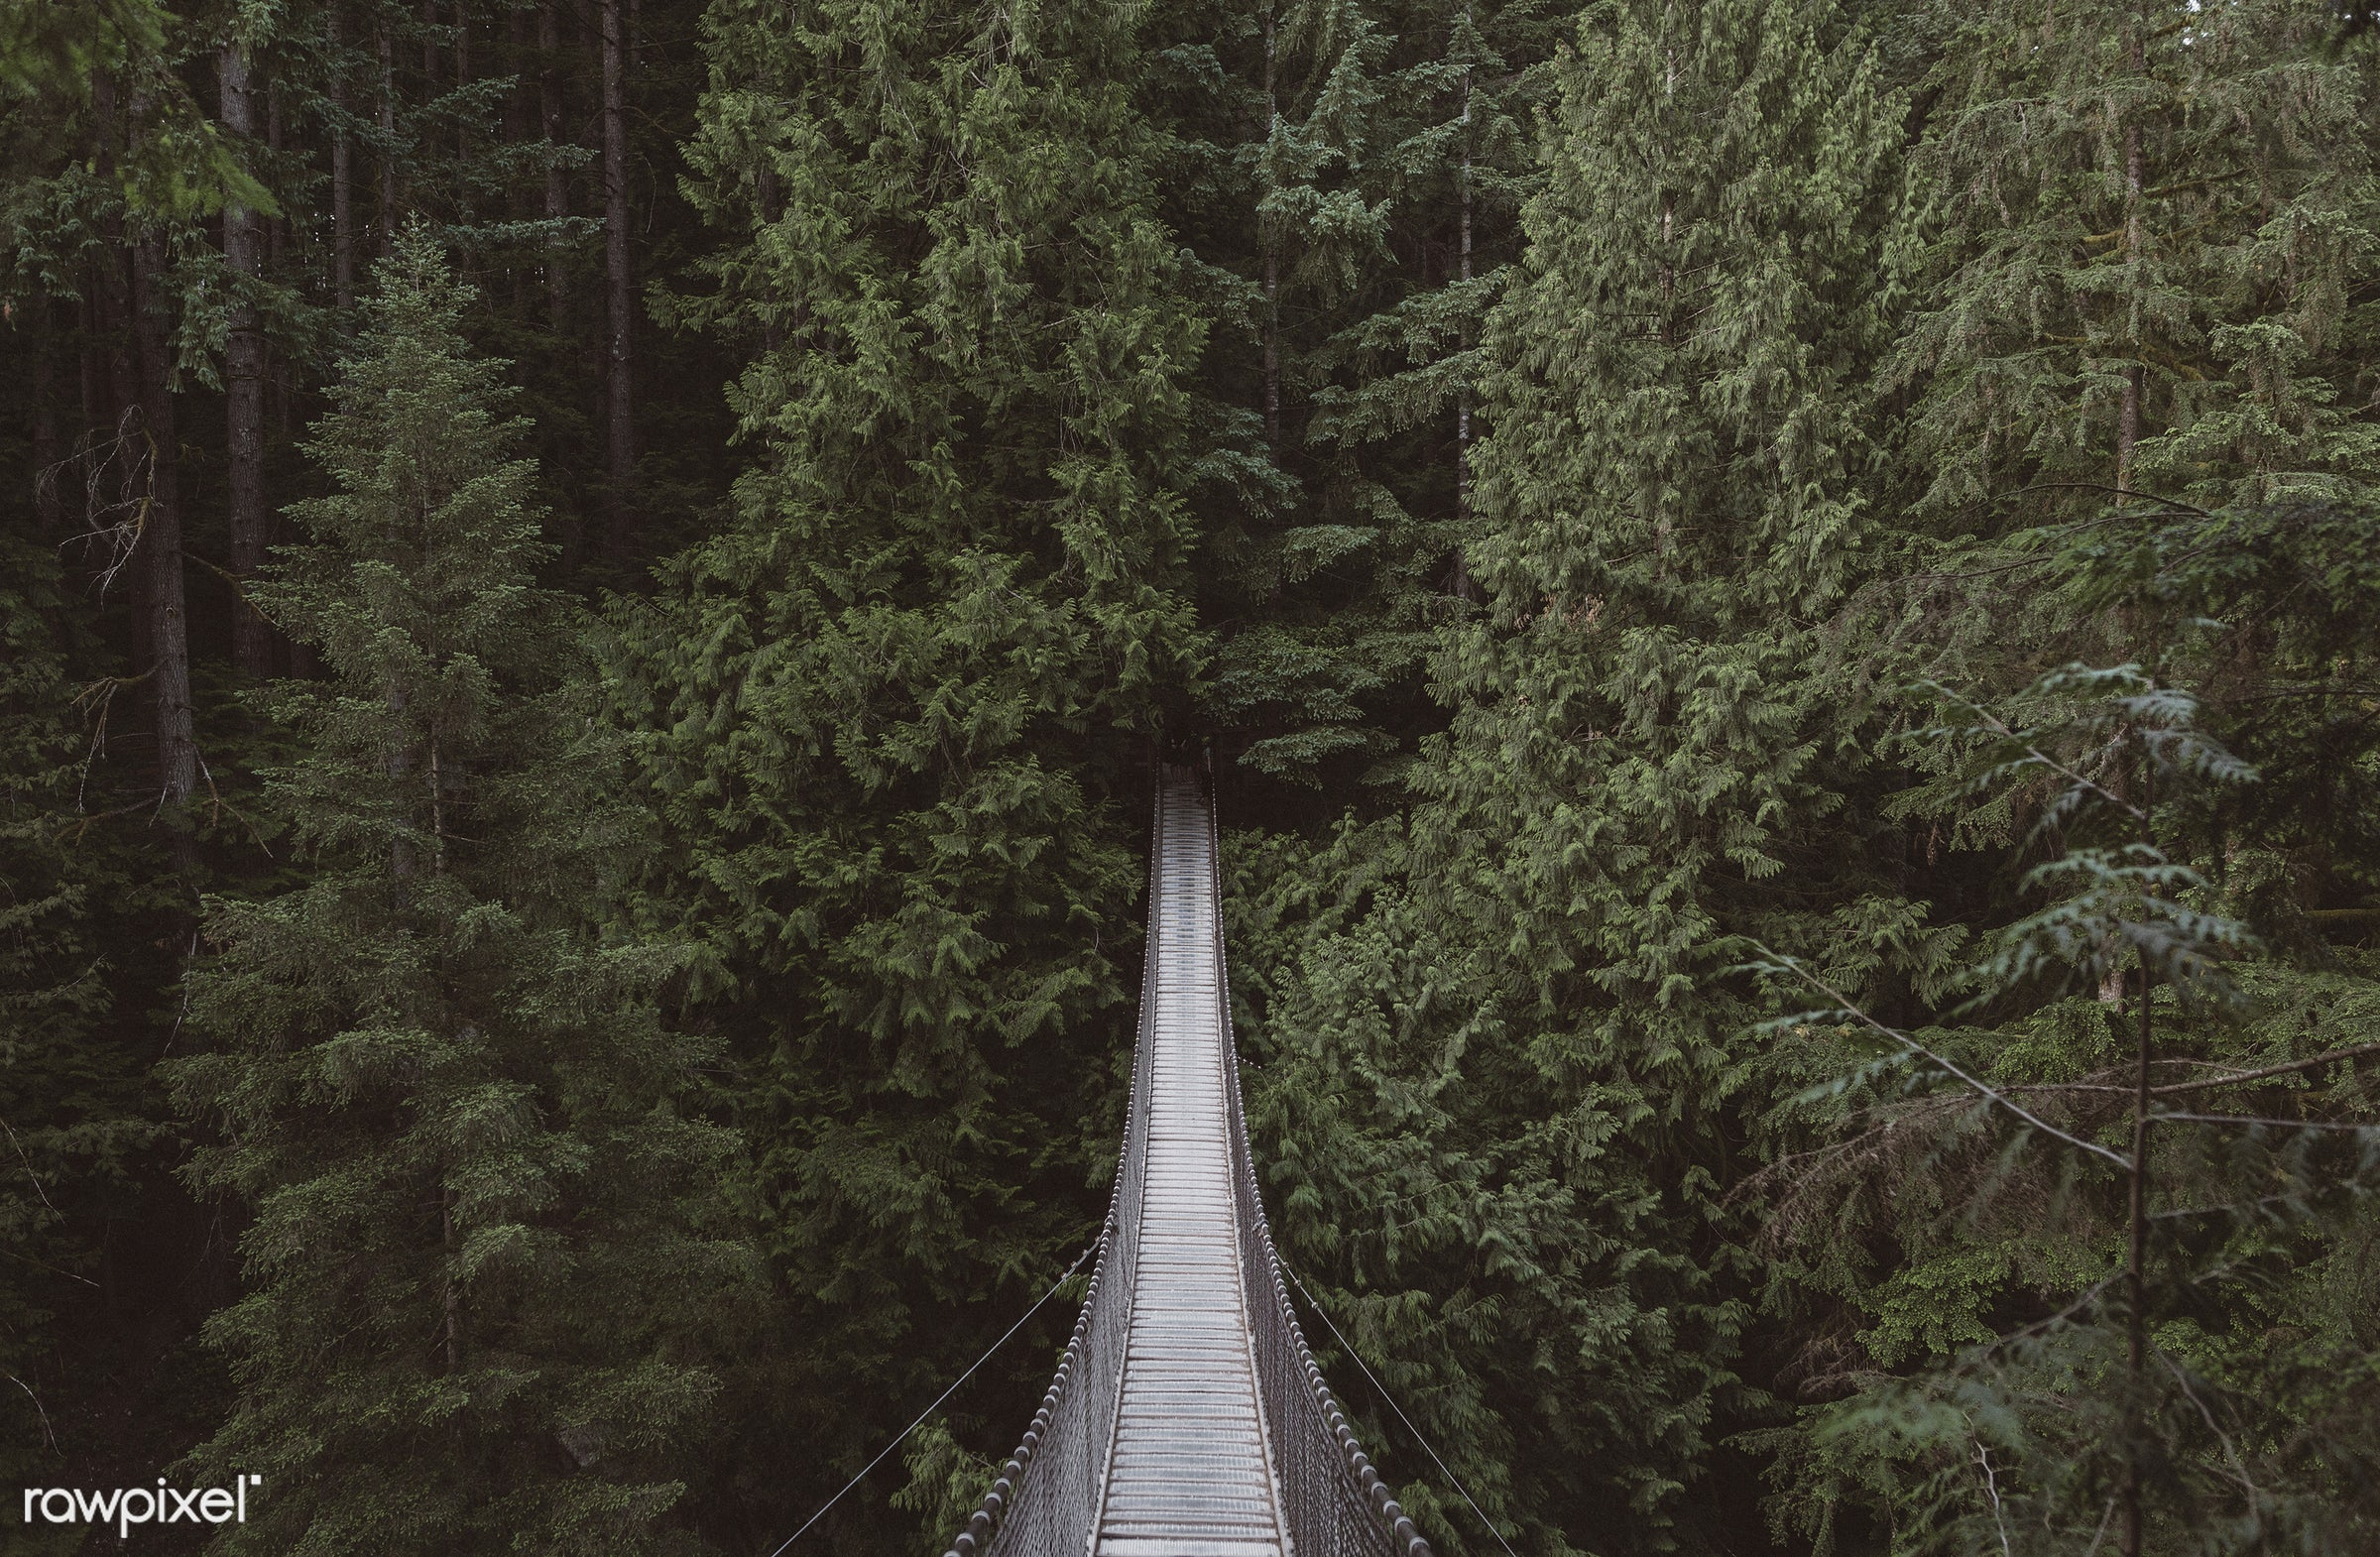 View of hanging bridge over a forest - bridge, crossing, forest, hanging bridge, natural, nature, outdoors, pathway, pine...